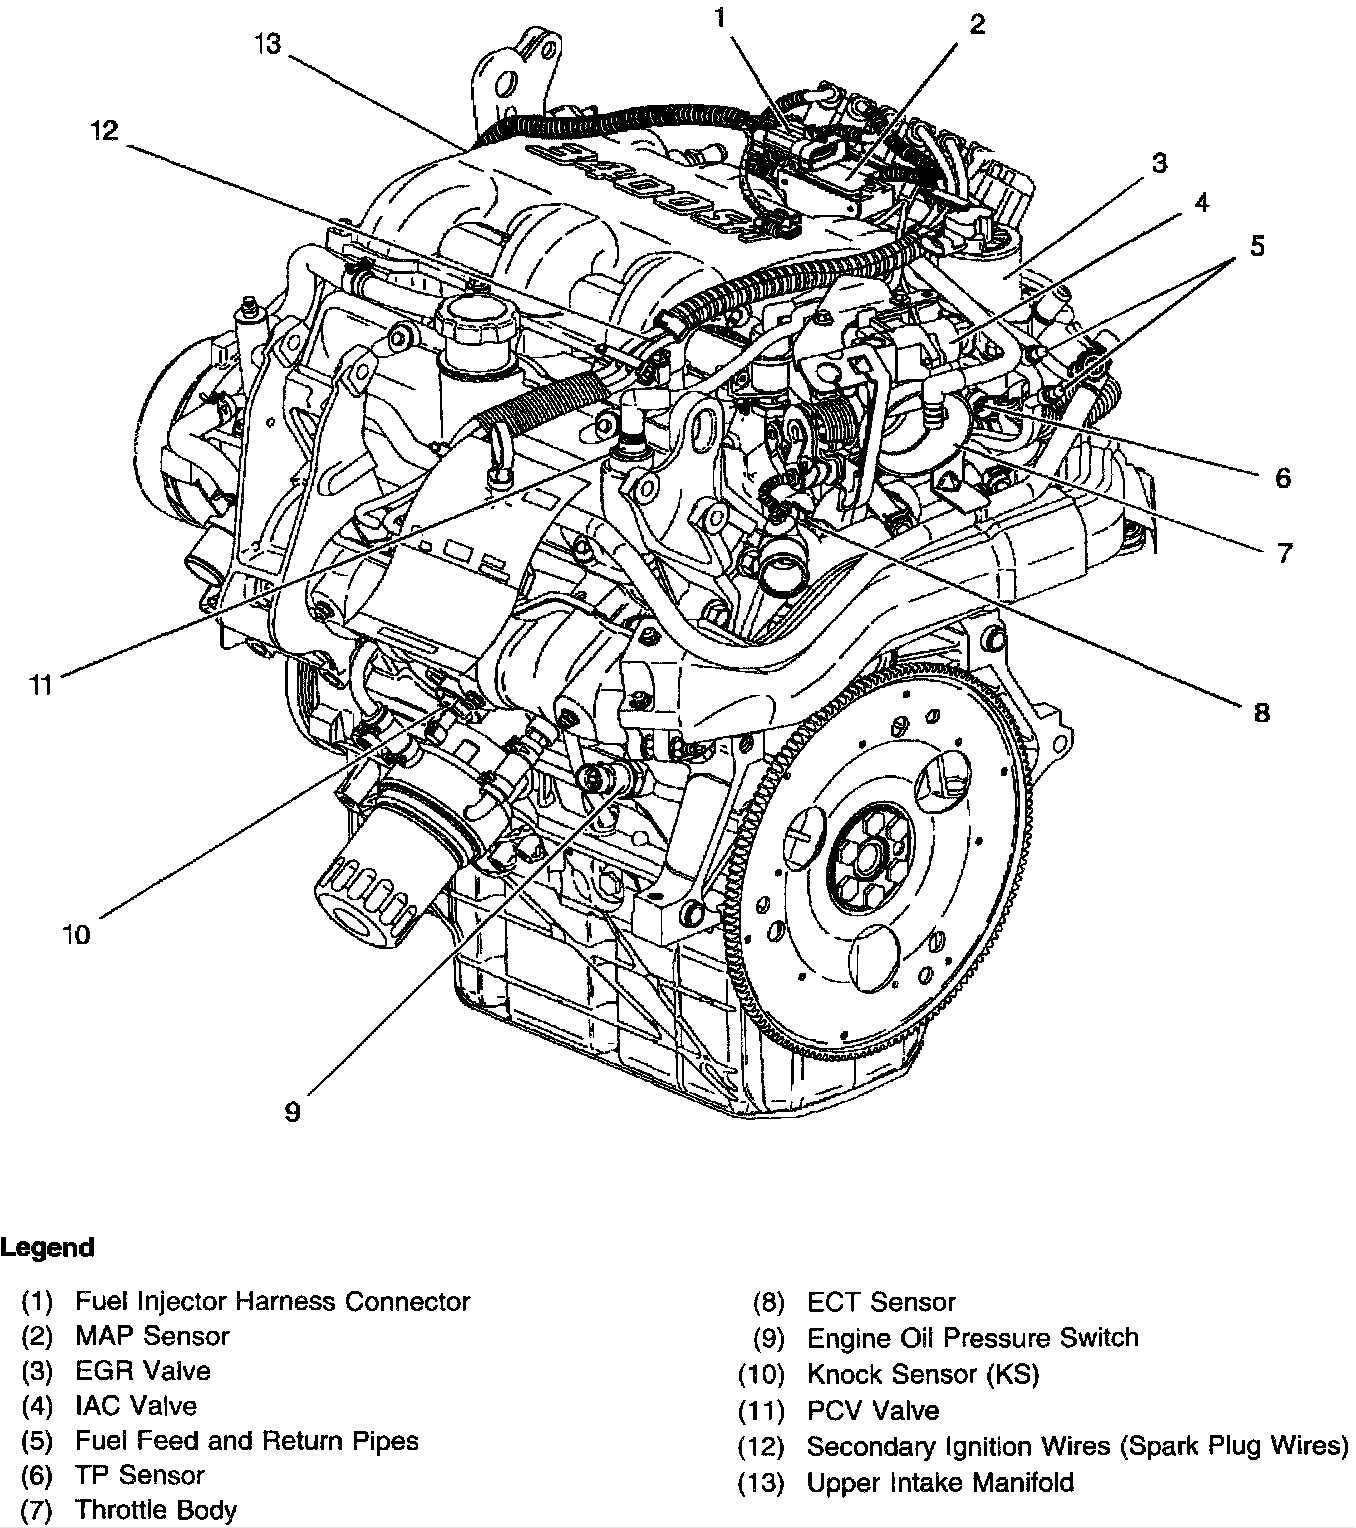 Diagram Of A Kia 3.5l Engine 37 V6 Engine Diagram Full Hd Version Engine Diagram toro Of Diagram Of A Kia 3.5l Engine